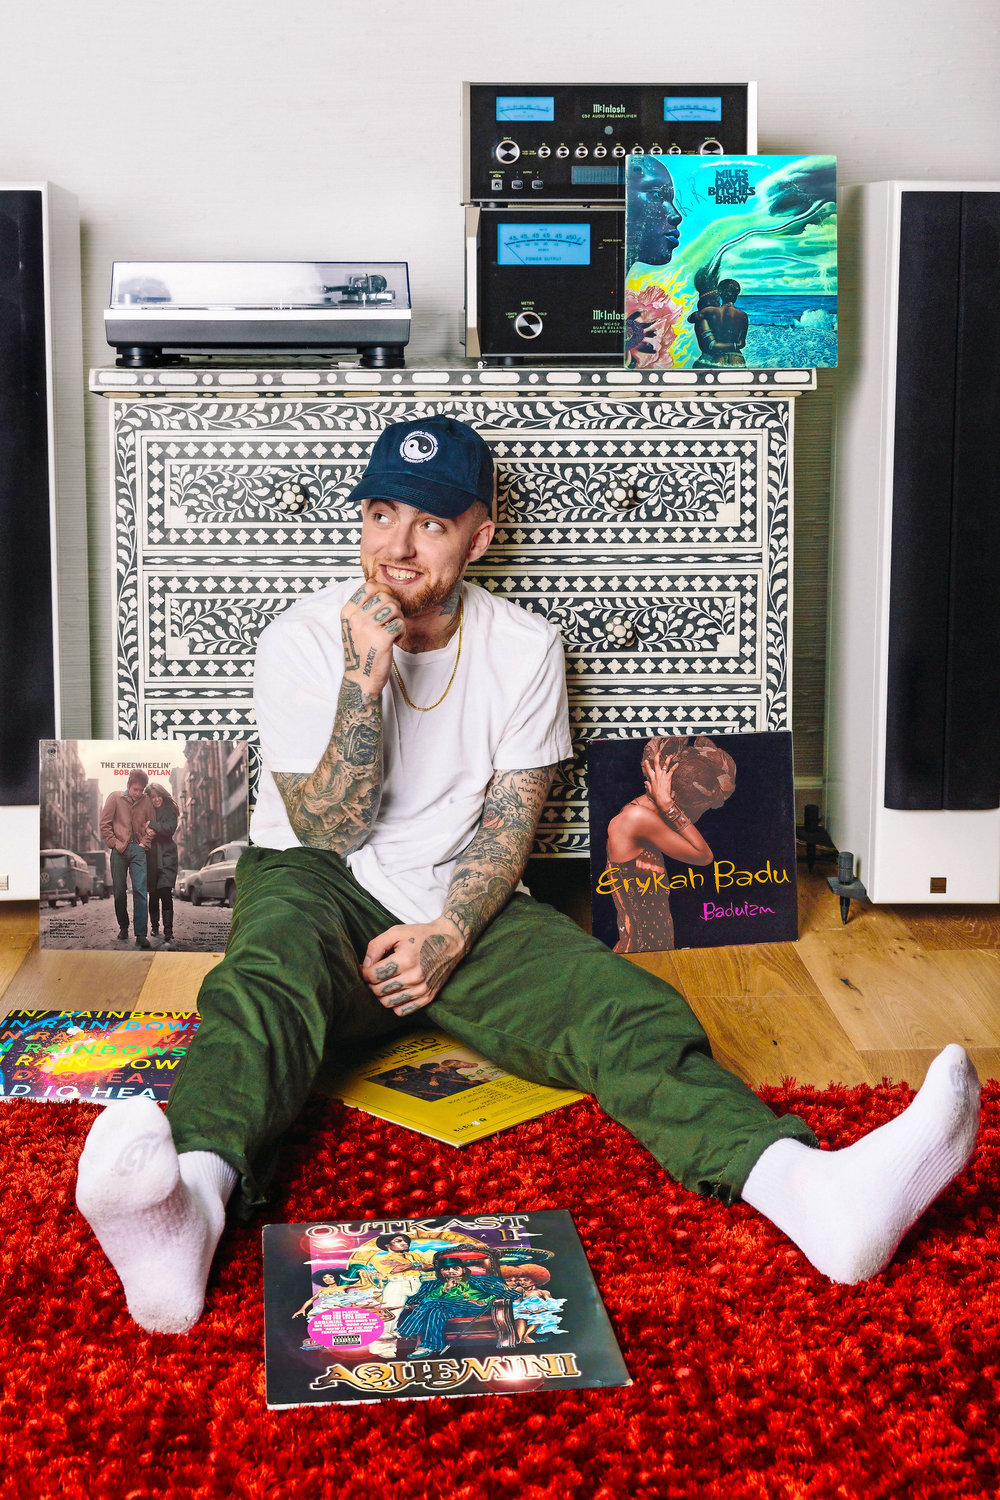 Mac Miller aka Larry Fisherman/REMmember music in 2020